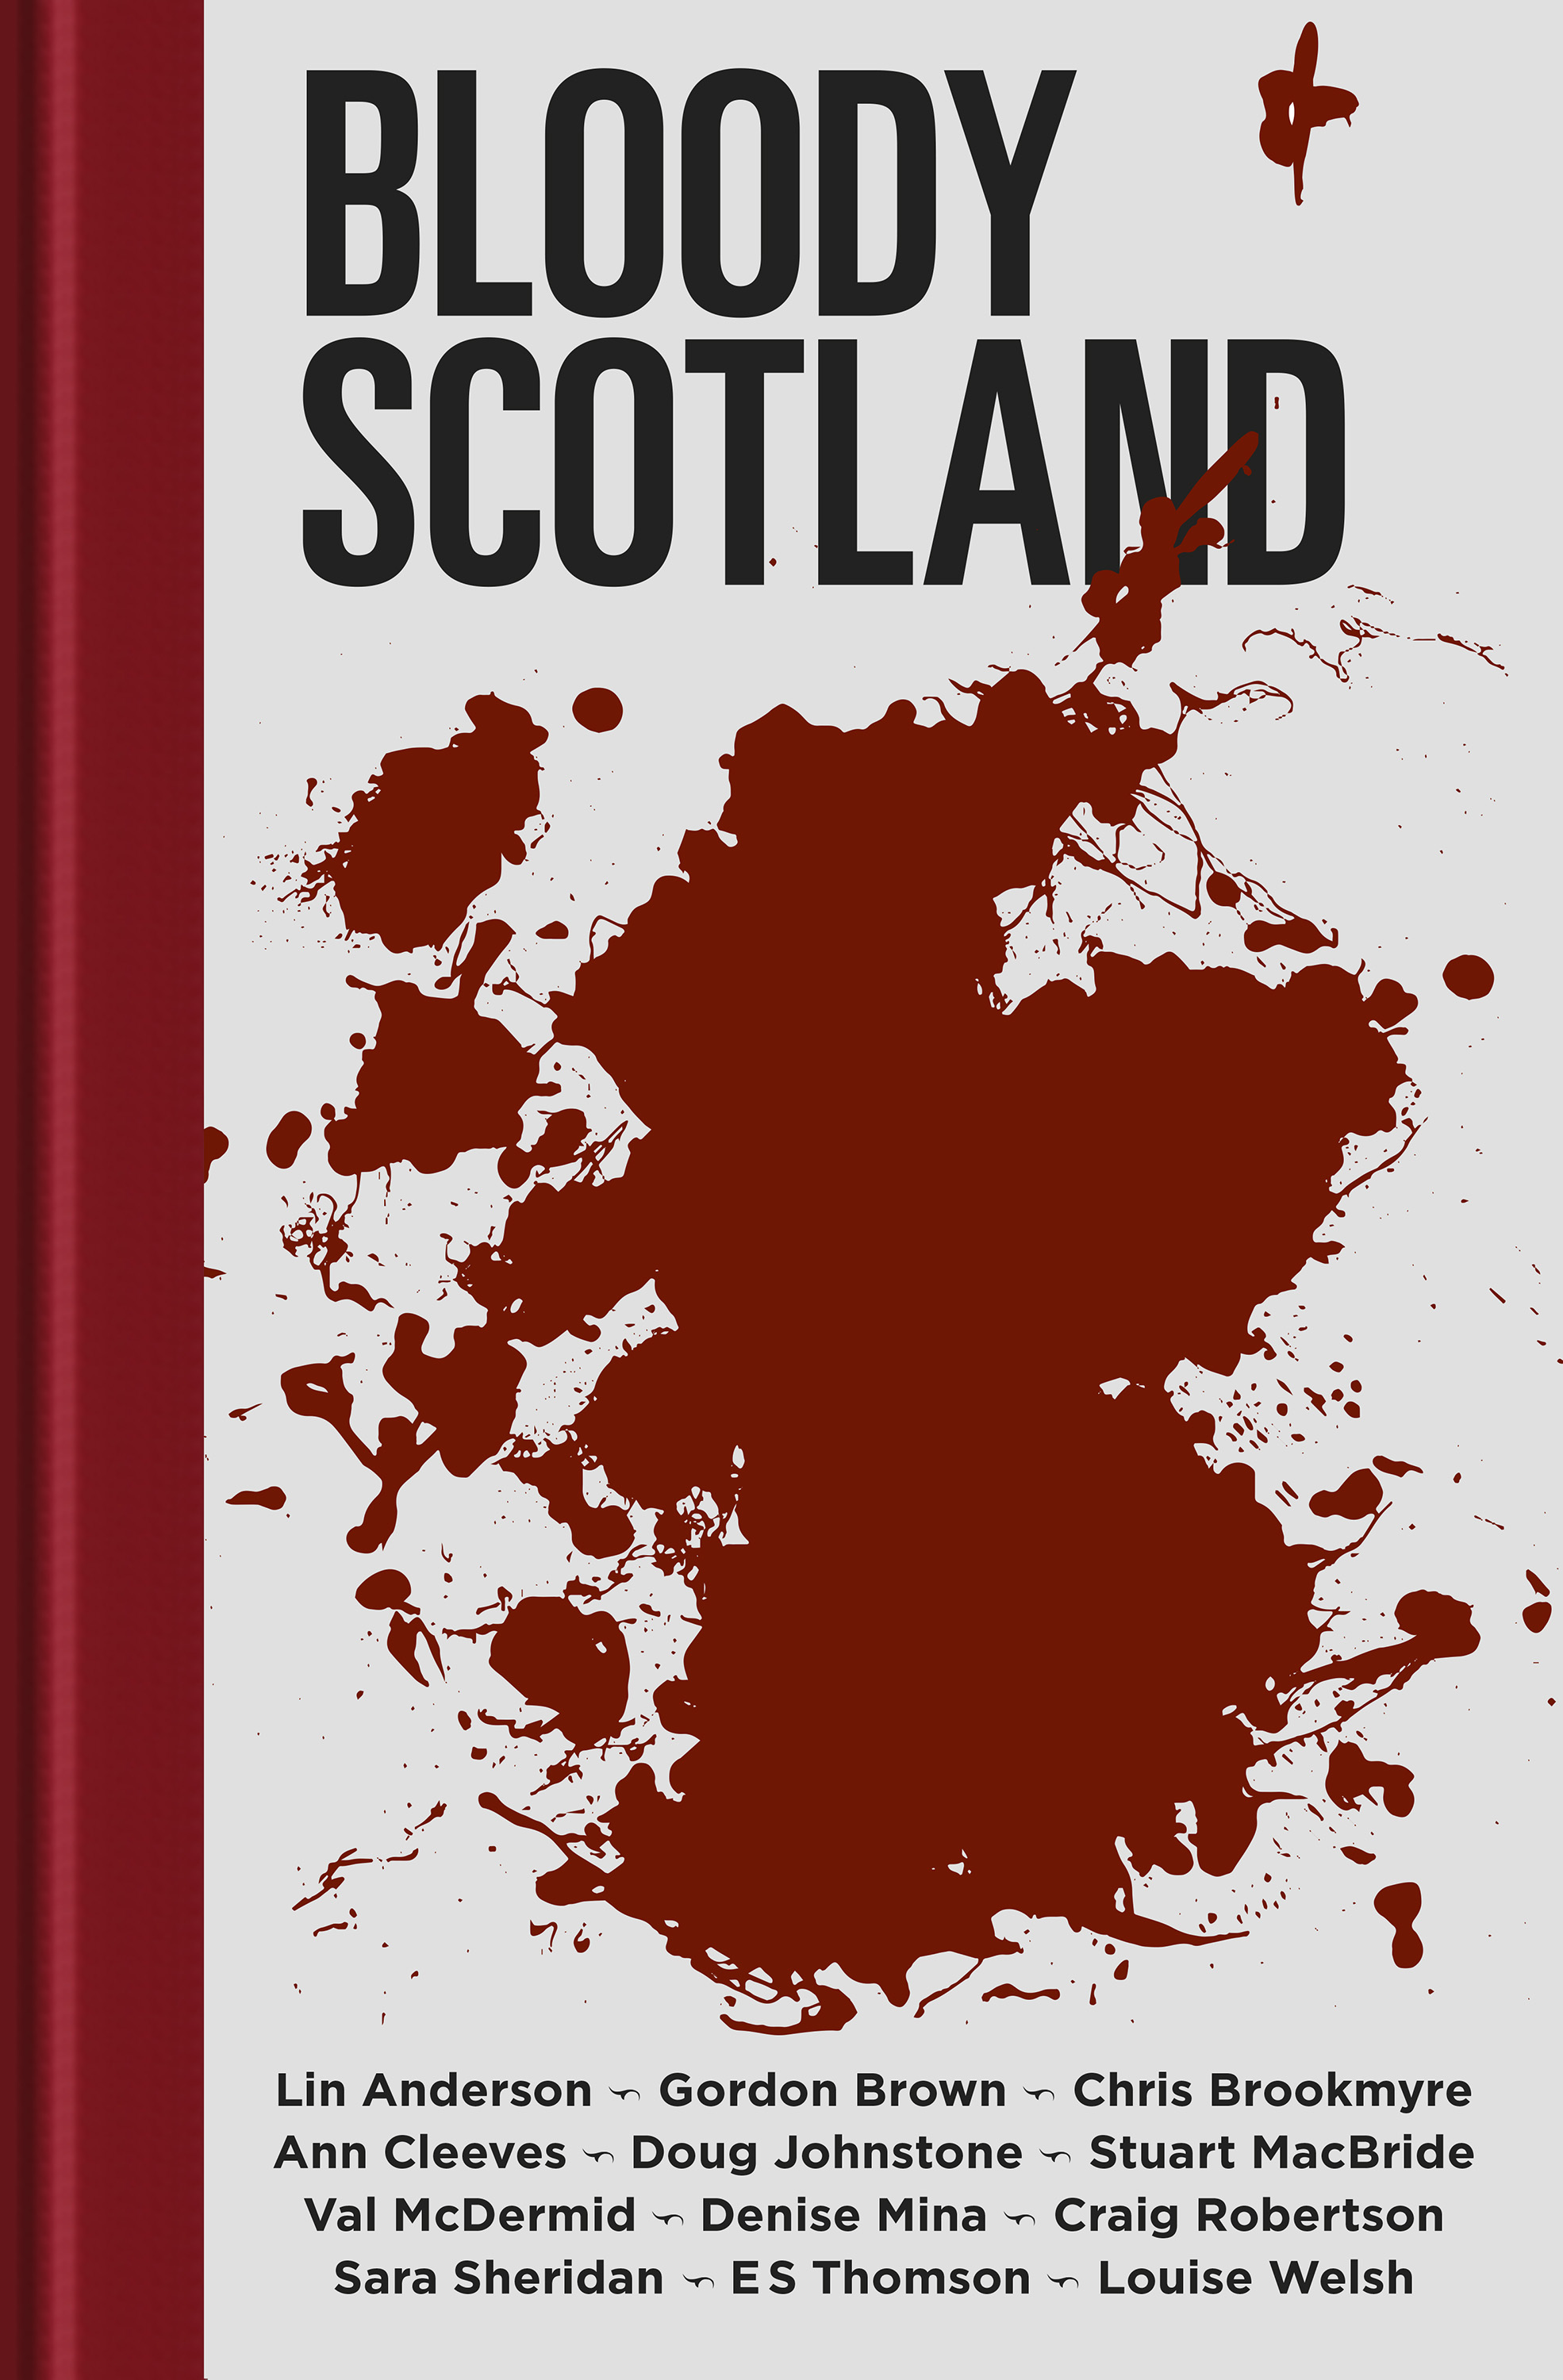 Introducing New Book Bloody Scotland